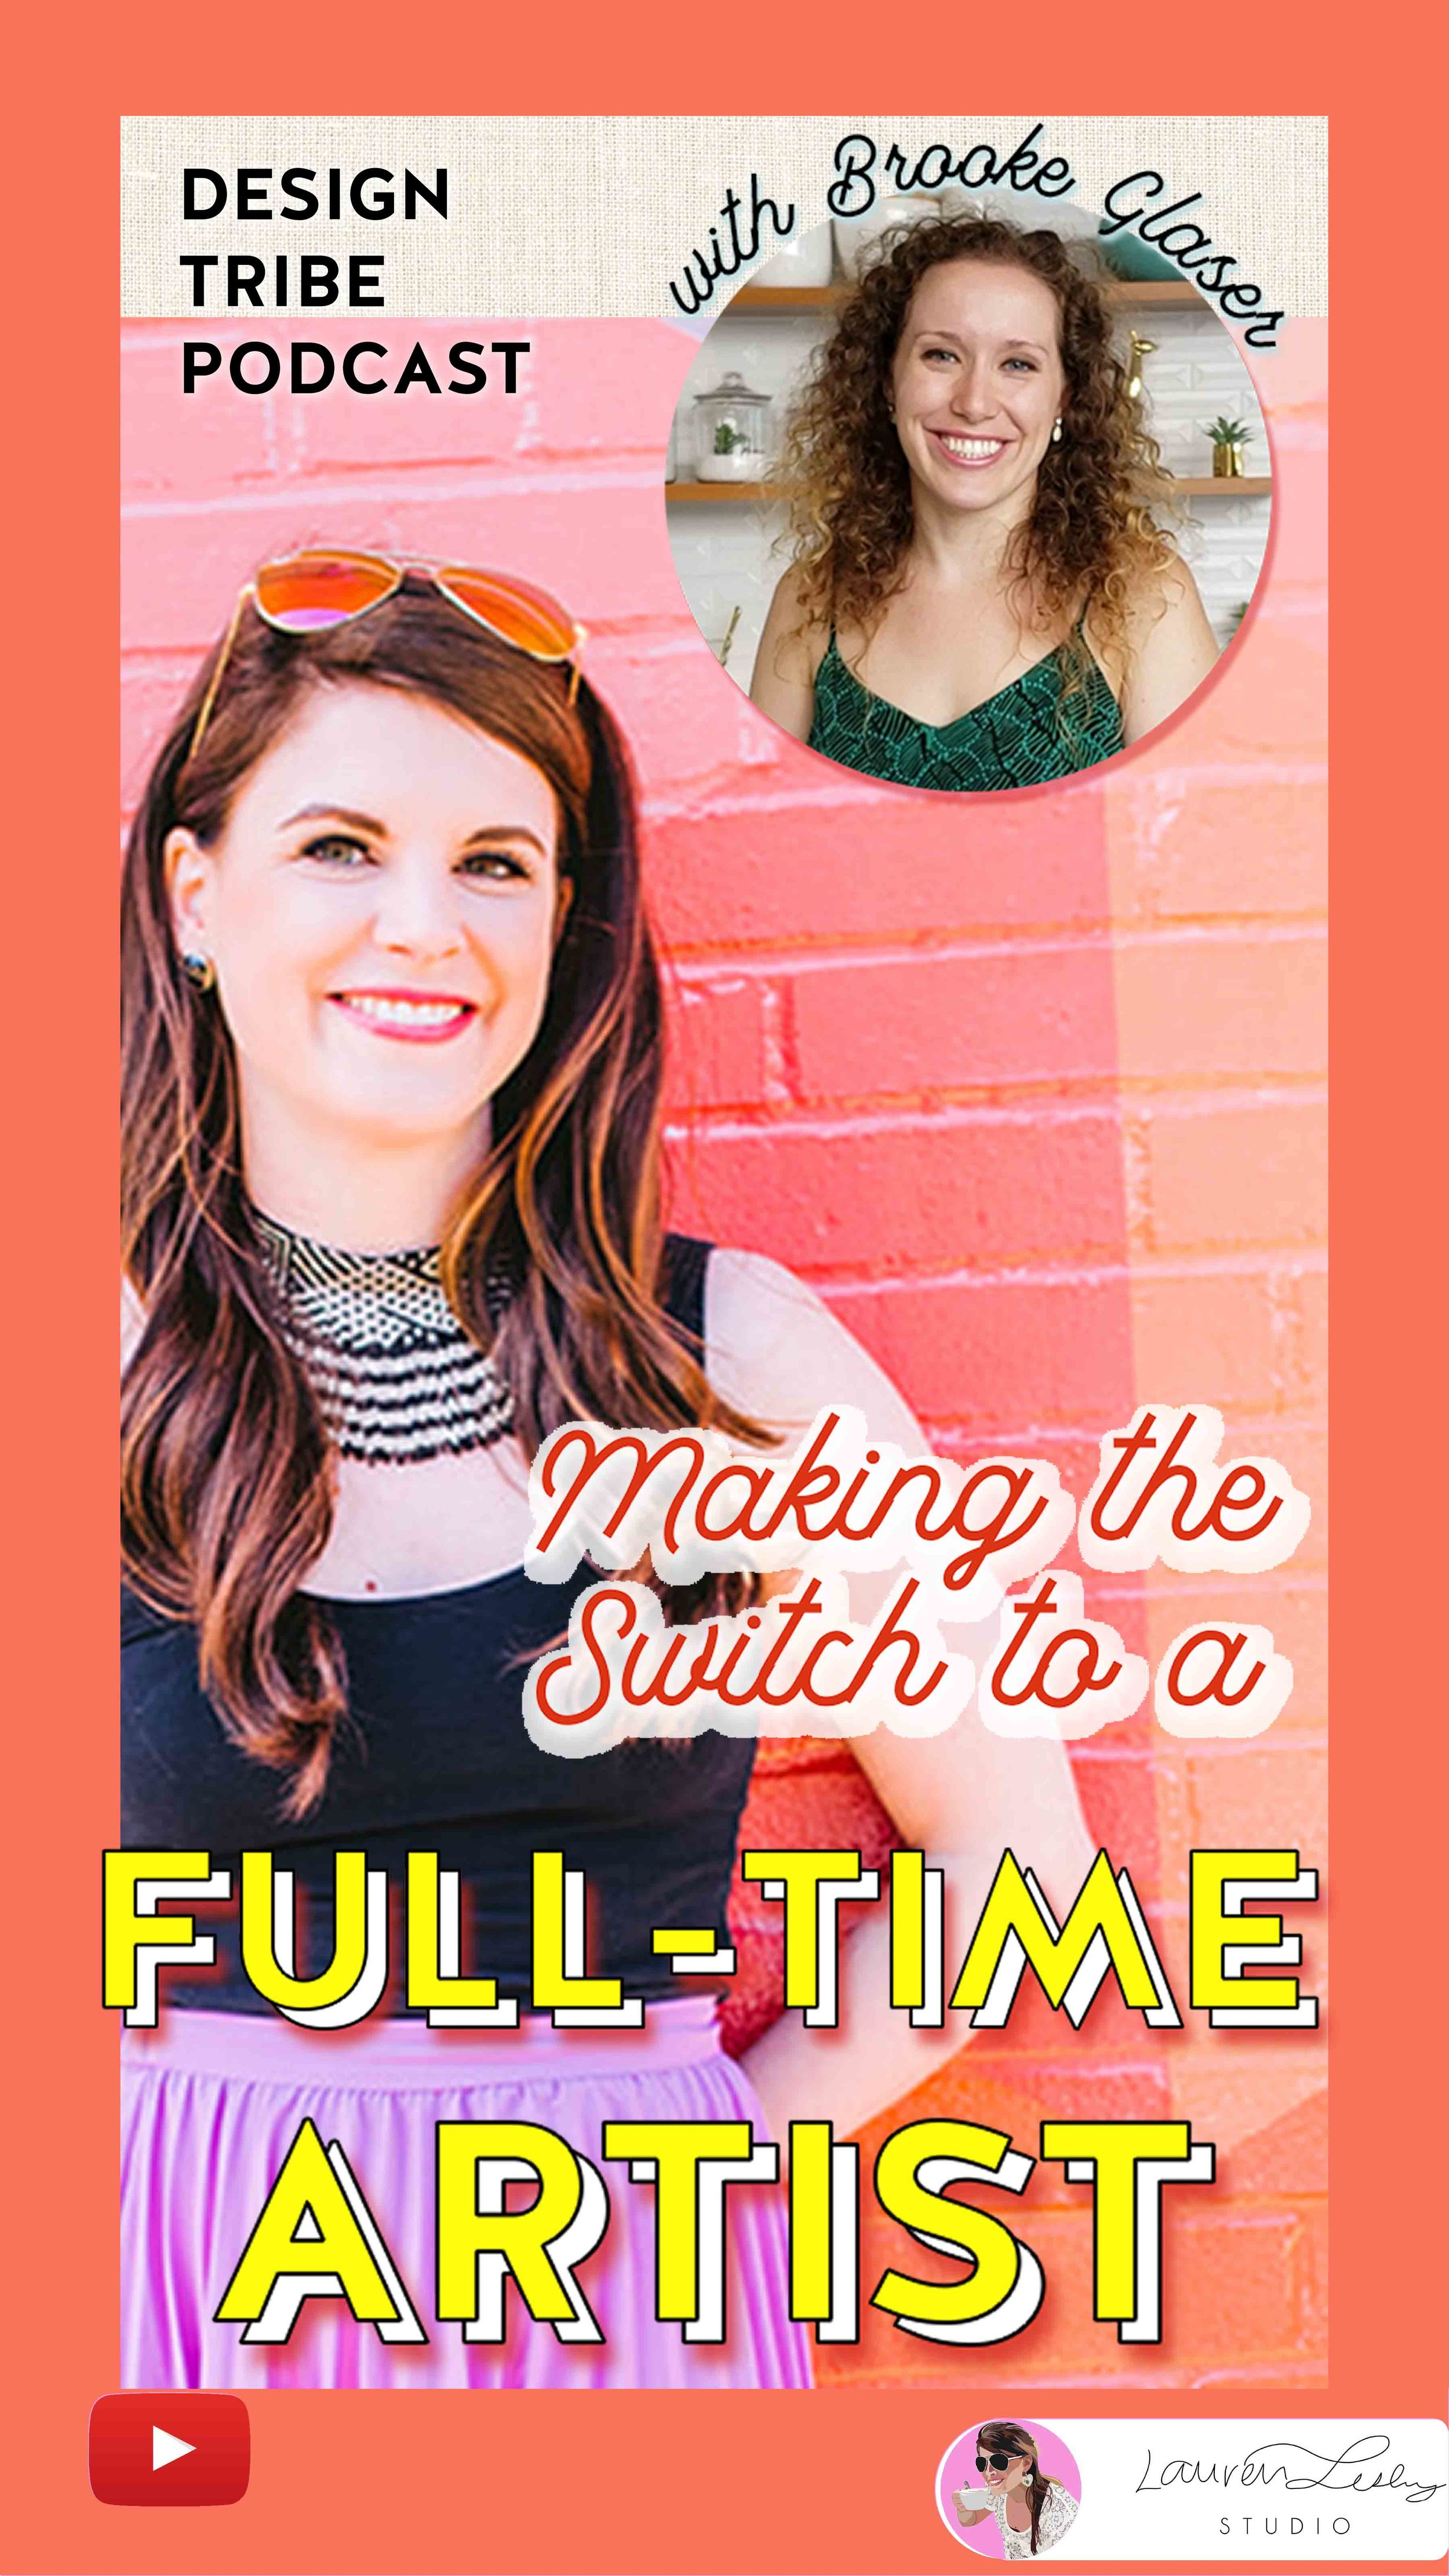 BECOMING A FULL TIME ARTIST - Get 8 amazing tips to becoming a full time artist, illustrator, or designer with special guest, Brooke Glaser.